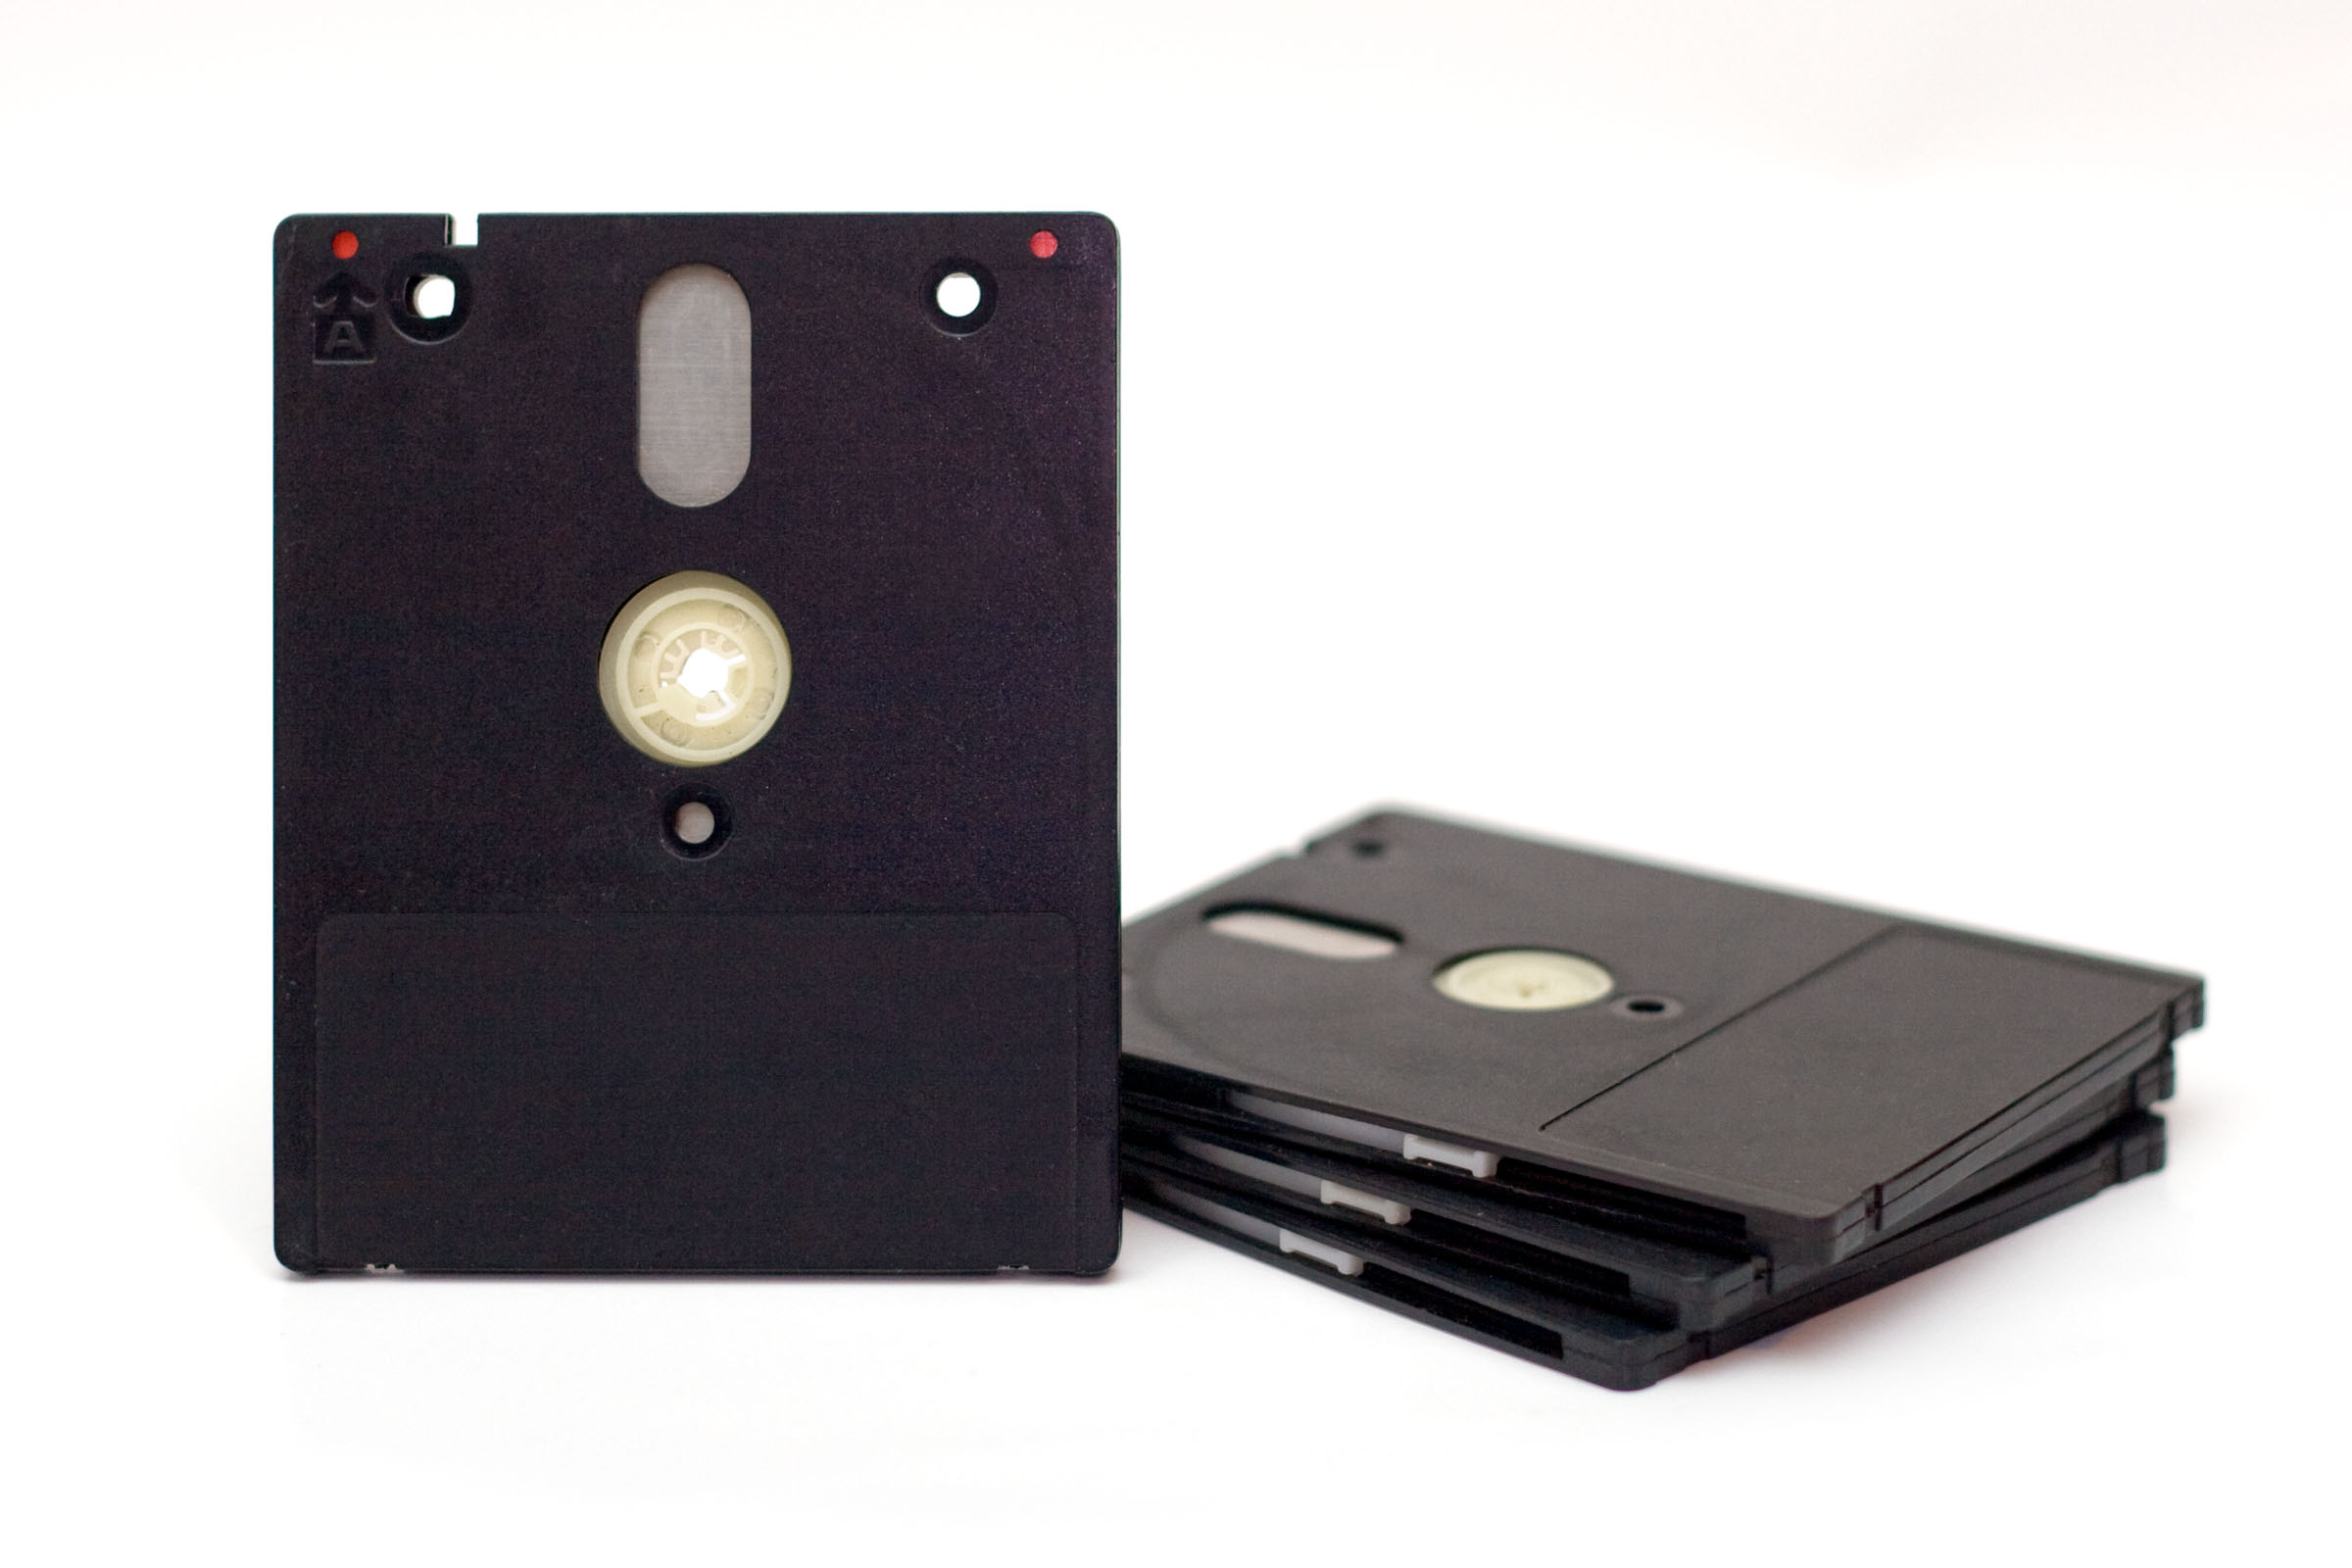 http://upload.wikimedia.org/wikipedia/commons/3/3d/3_inch_floppy_disks.jpg